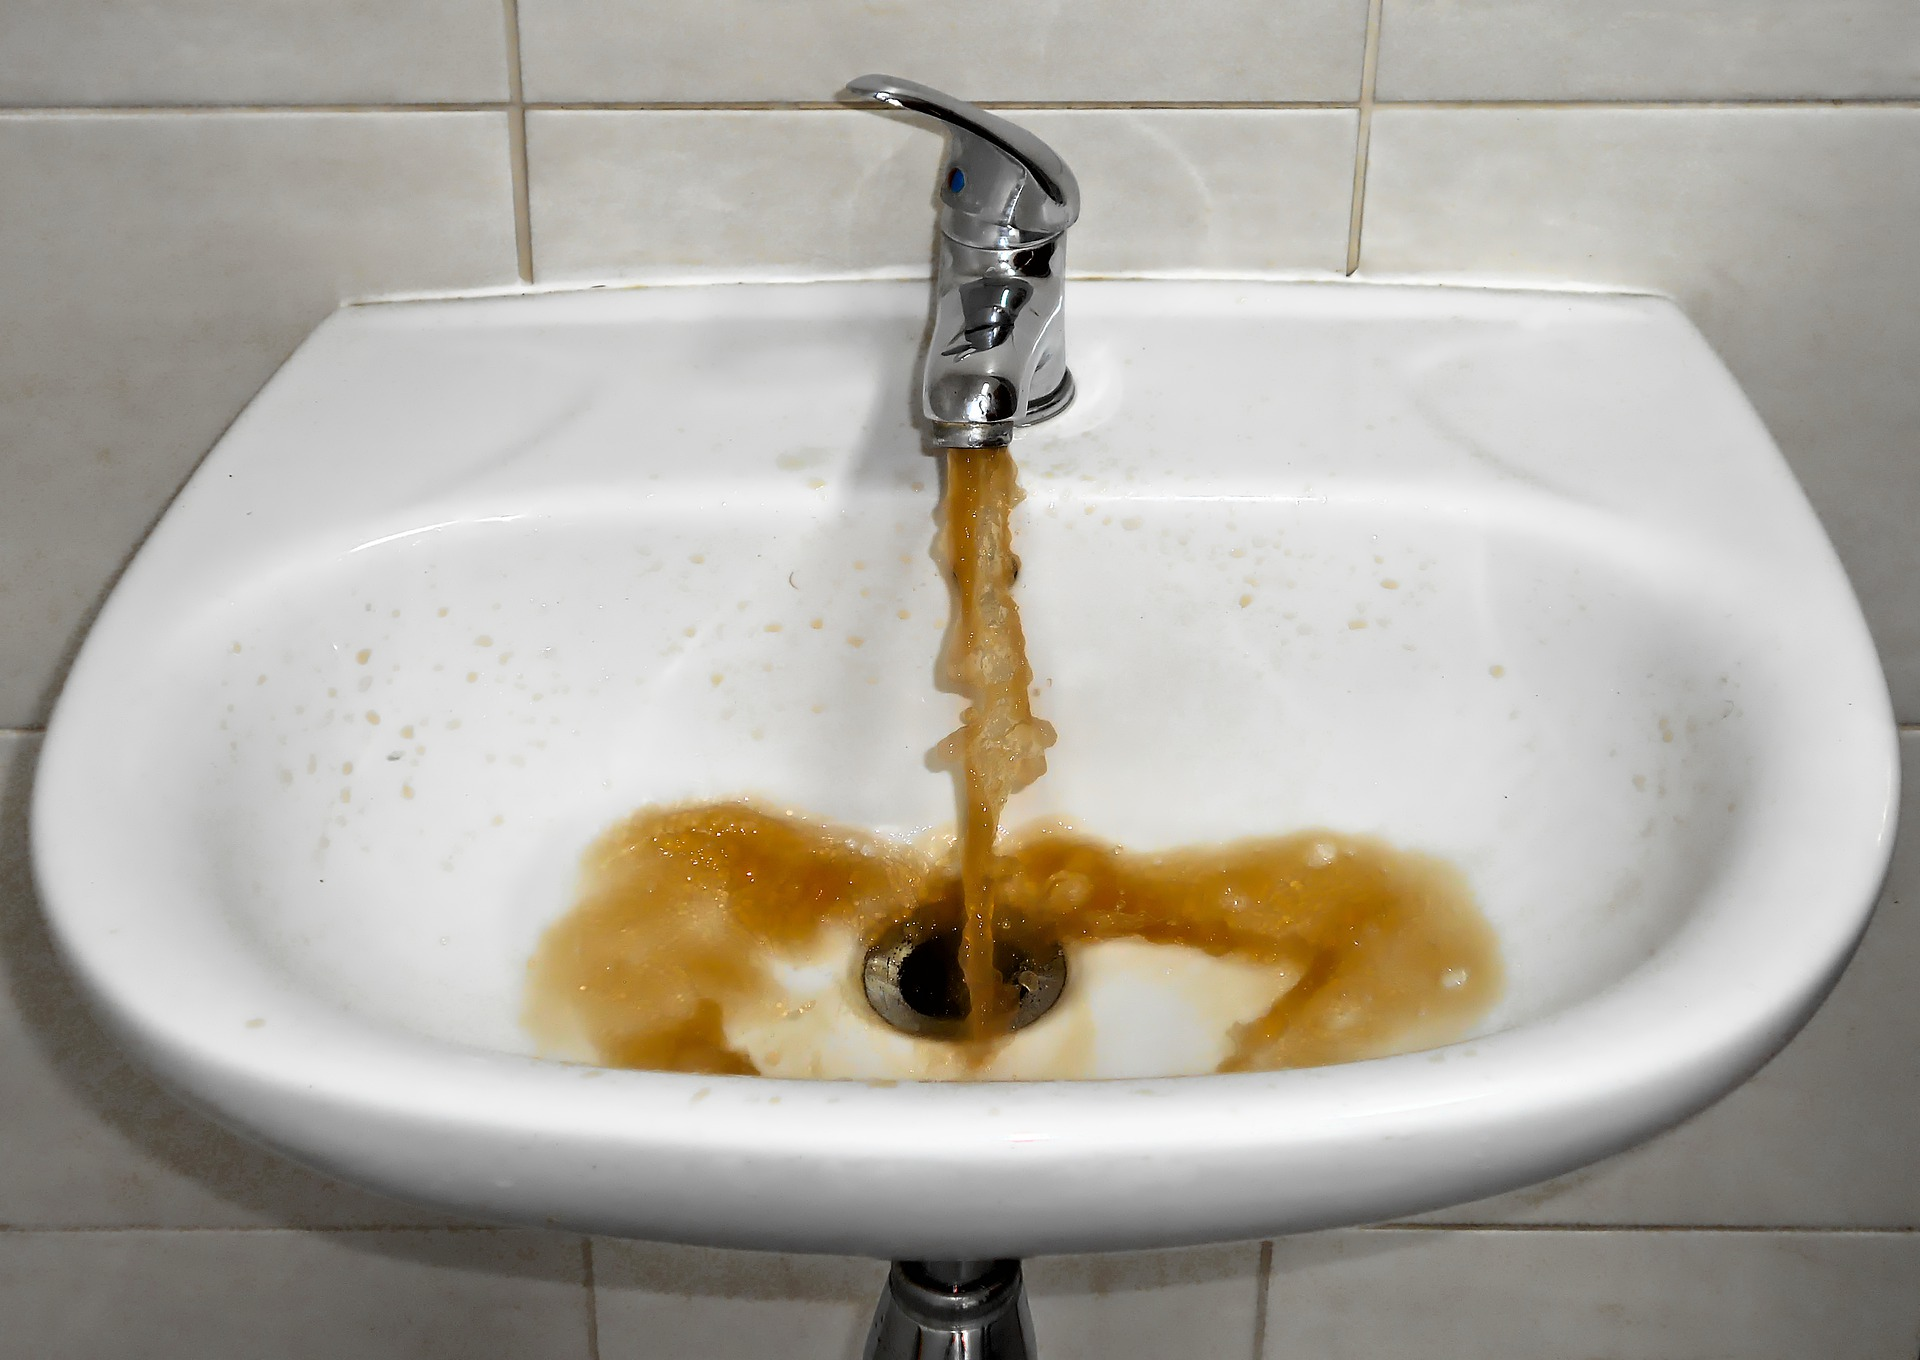 Dirty faucet well water